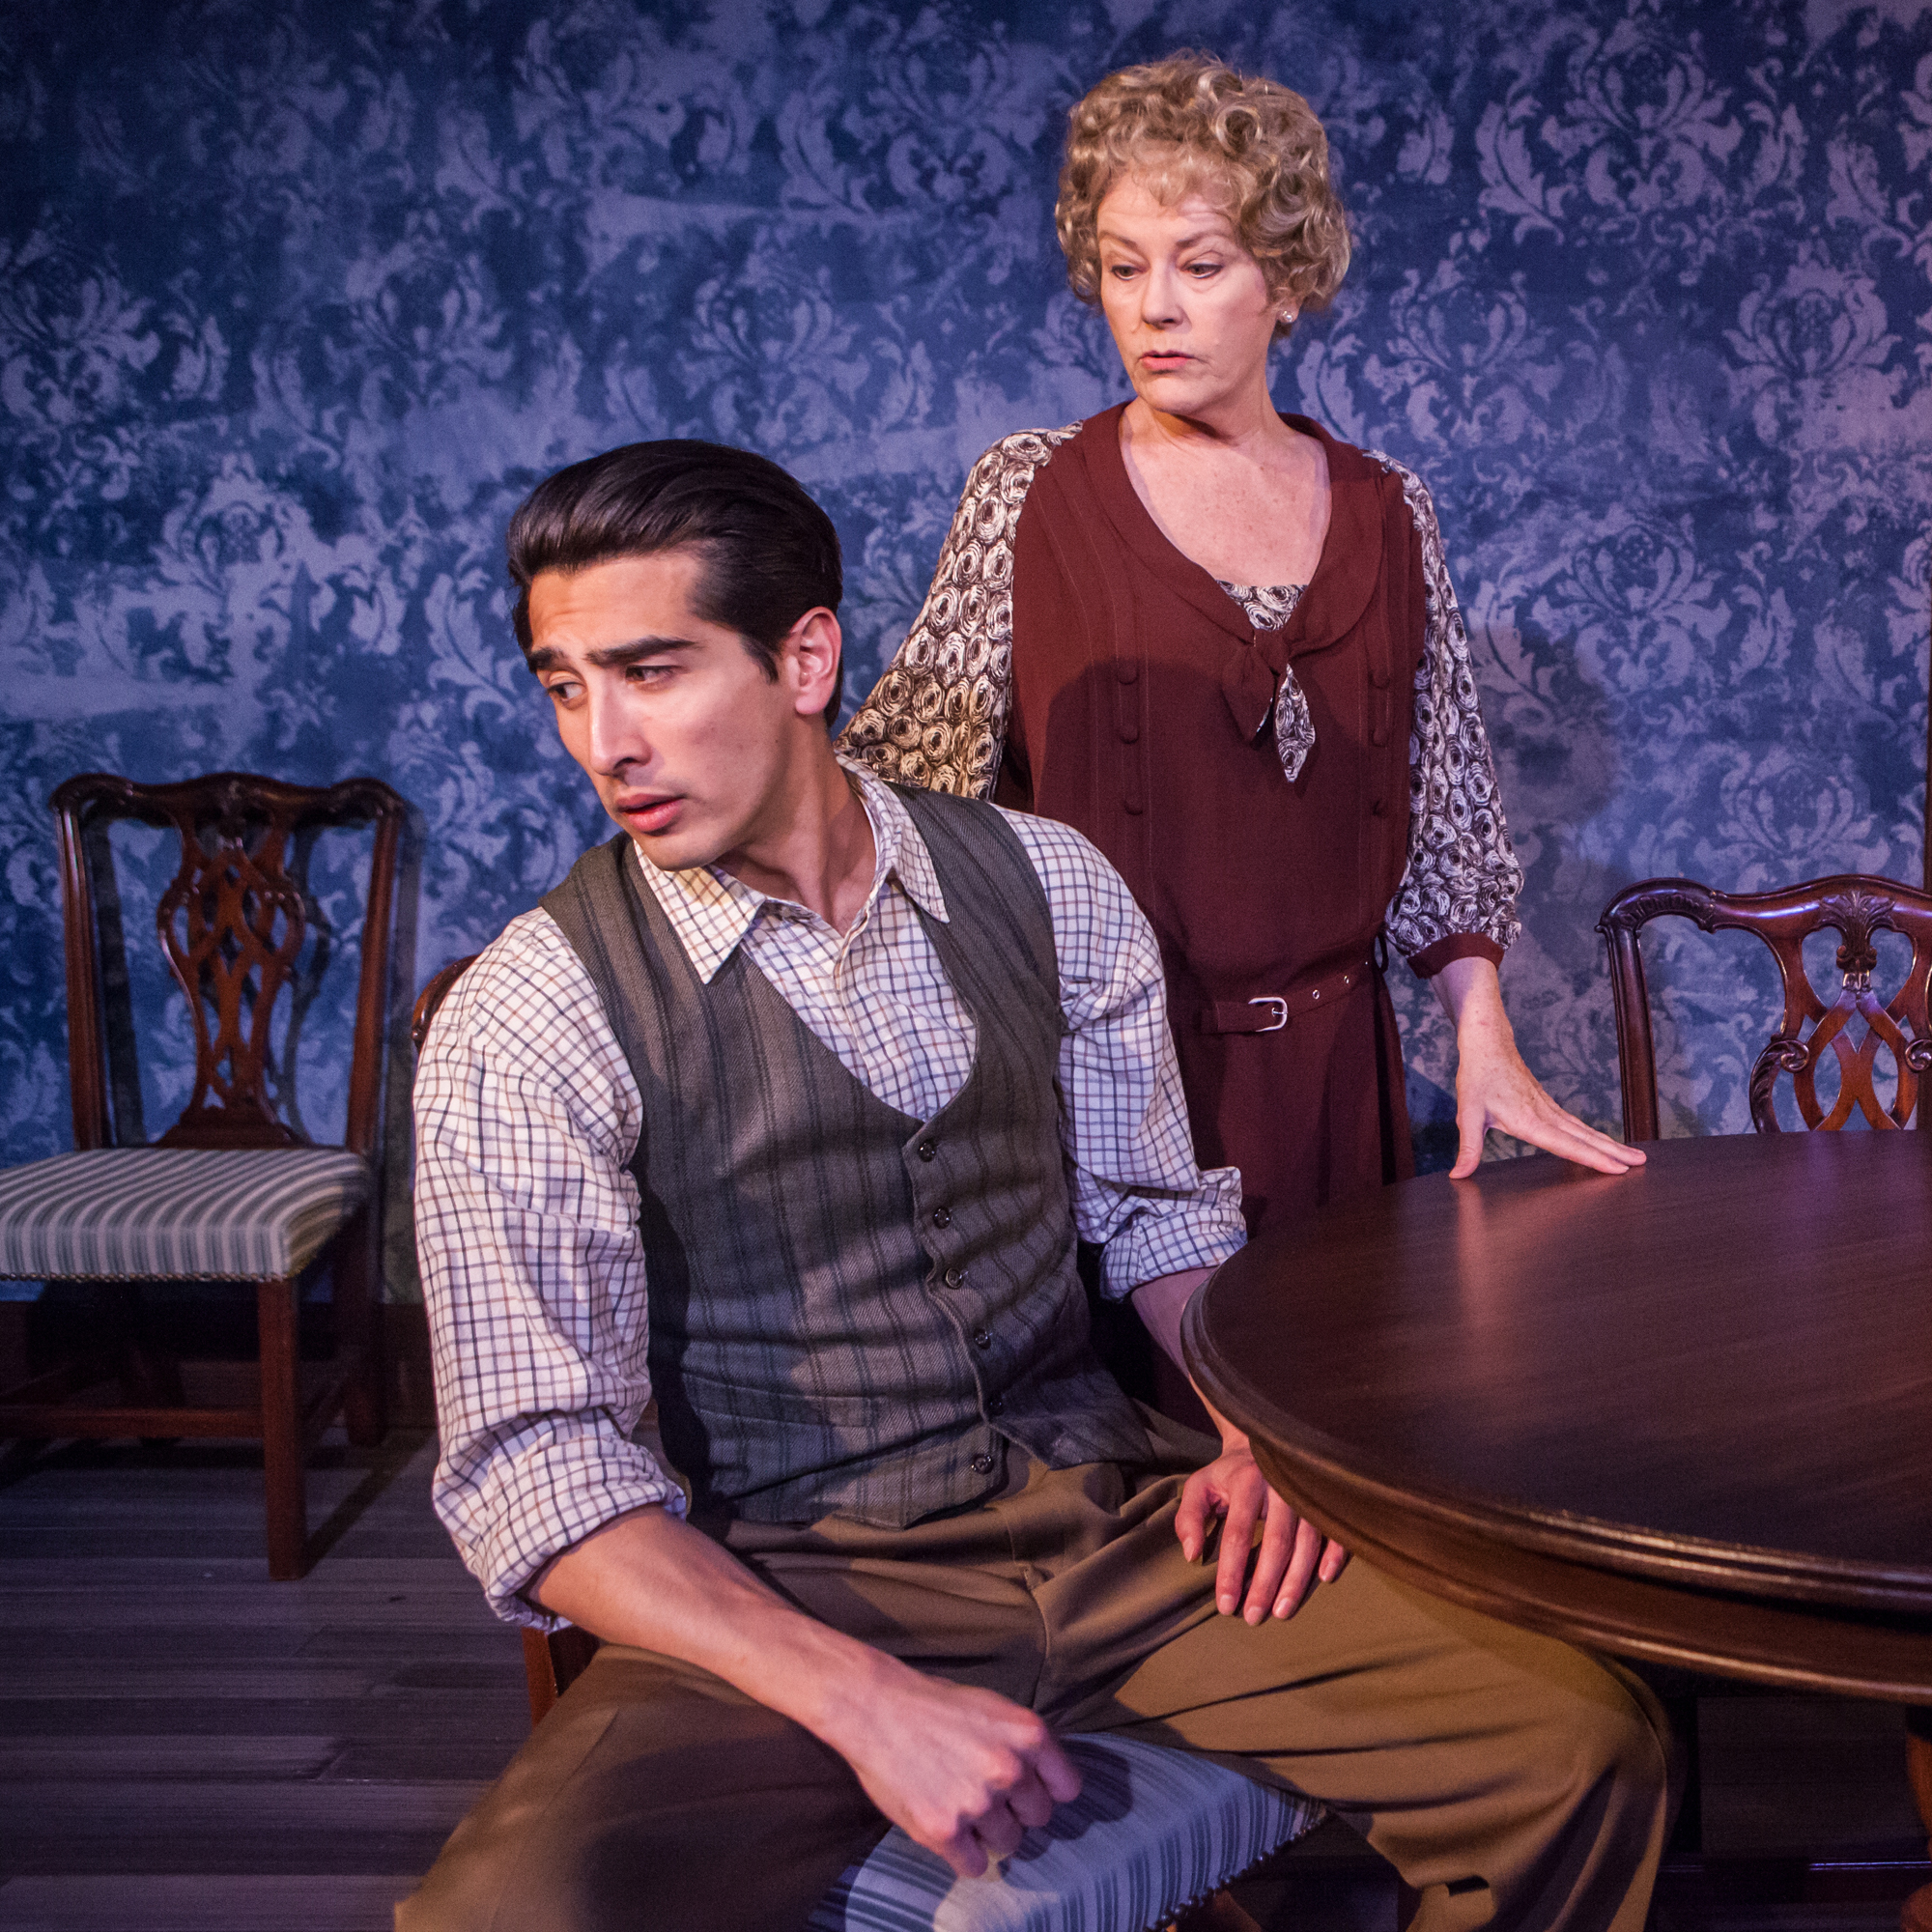 character analysis in the book through the glass menagerie Amanda wingfield is the most prominent and dynamic character in the play she  is described by williams as a little woman of great but confused vitality clinging.